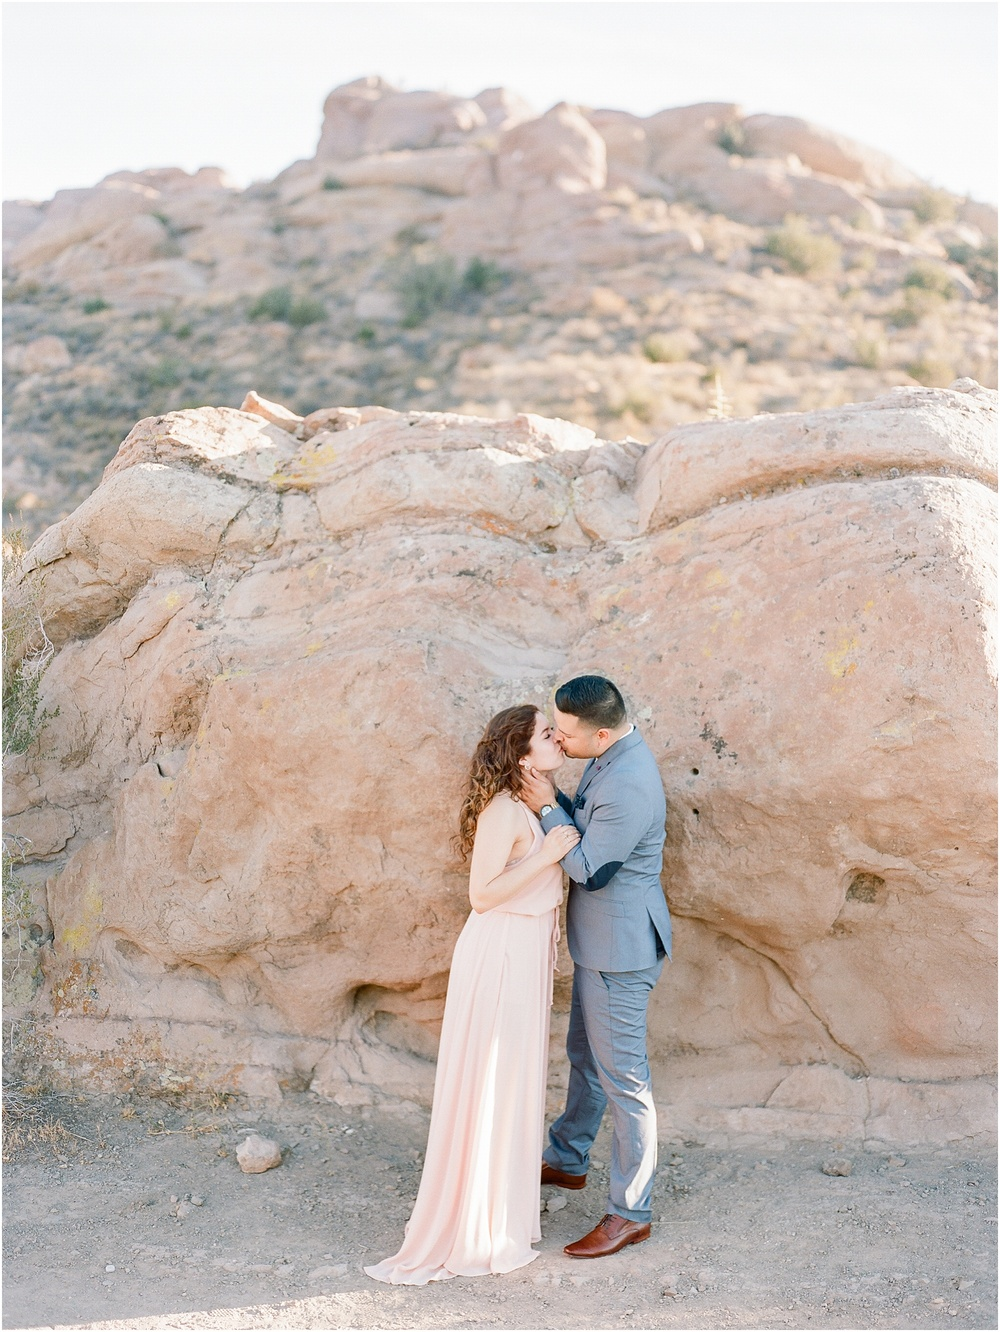 Vasquez-rocks-engagement-session-32.jpg